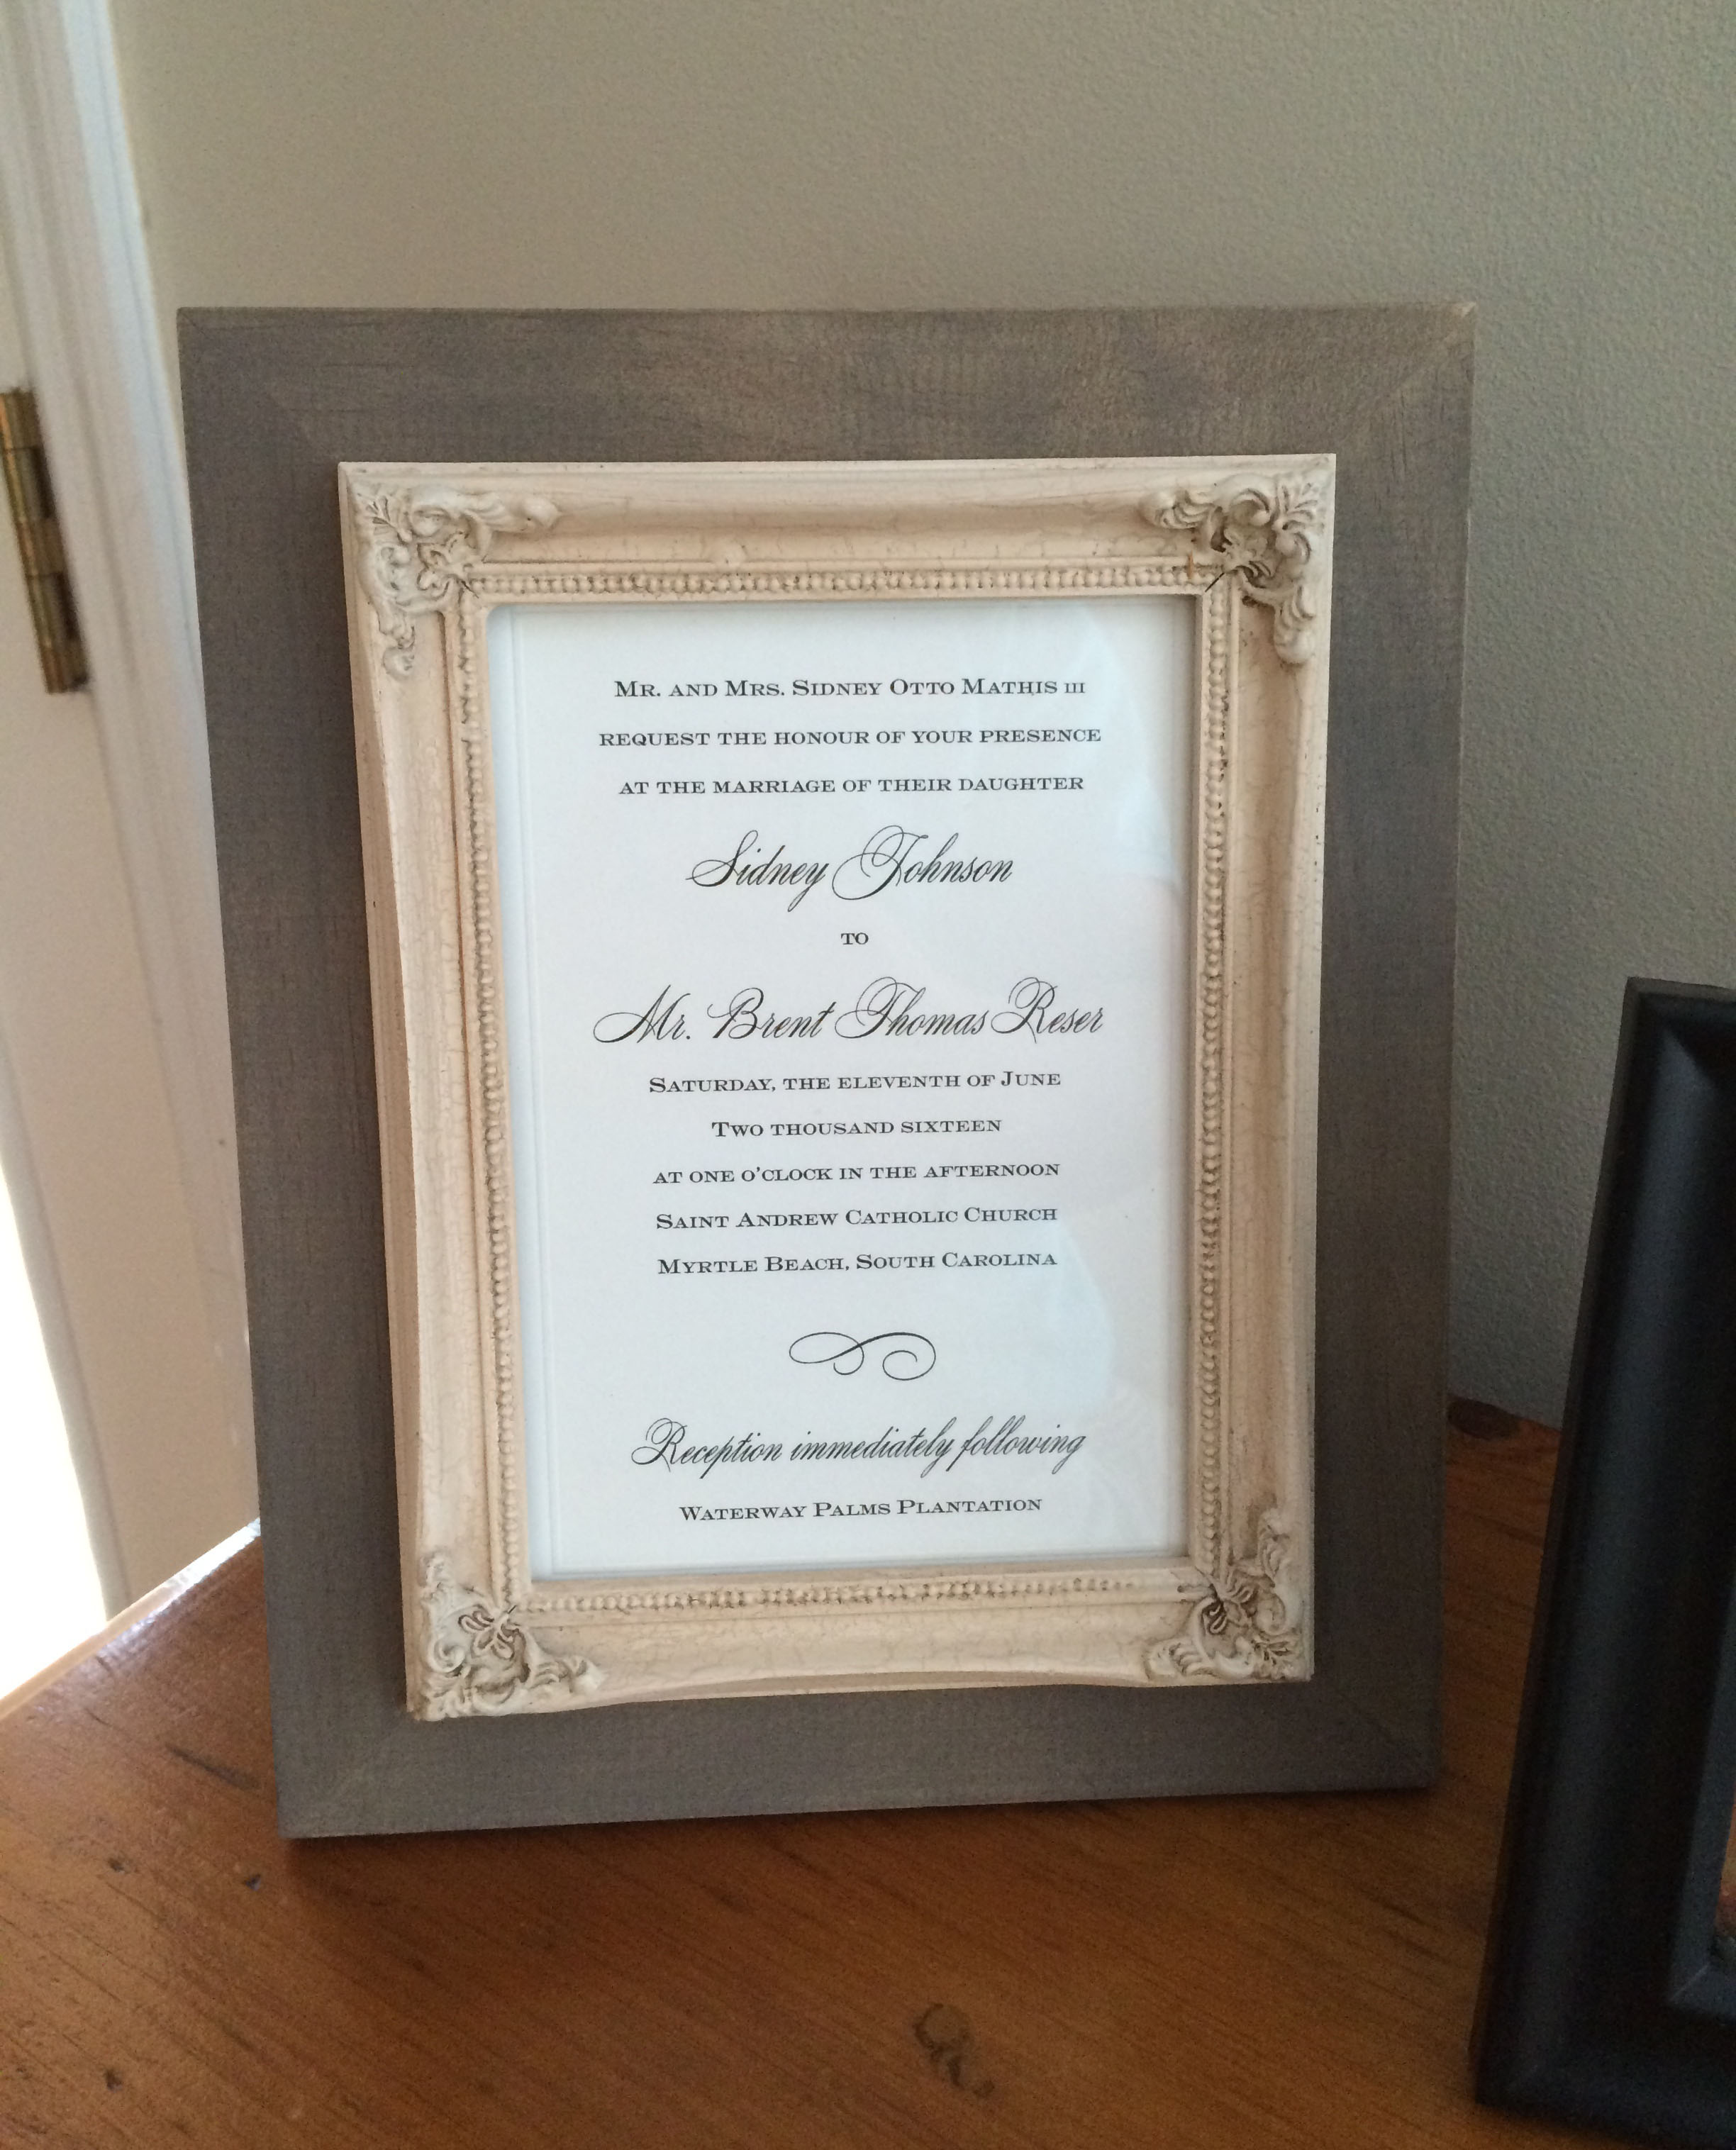 Yesterday in the mail, I received this from my parents. It is so nice to have a framed wedding invitation! Thank you to my parents.